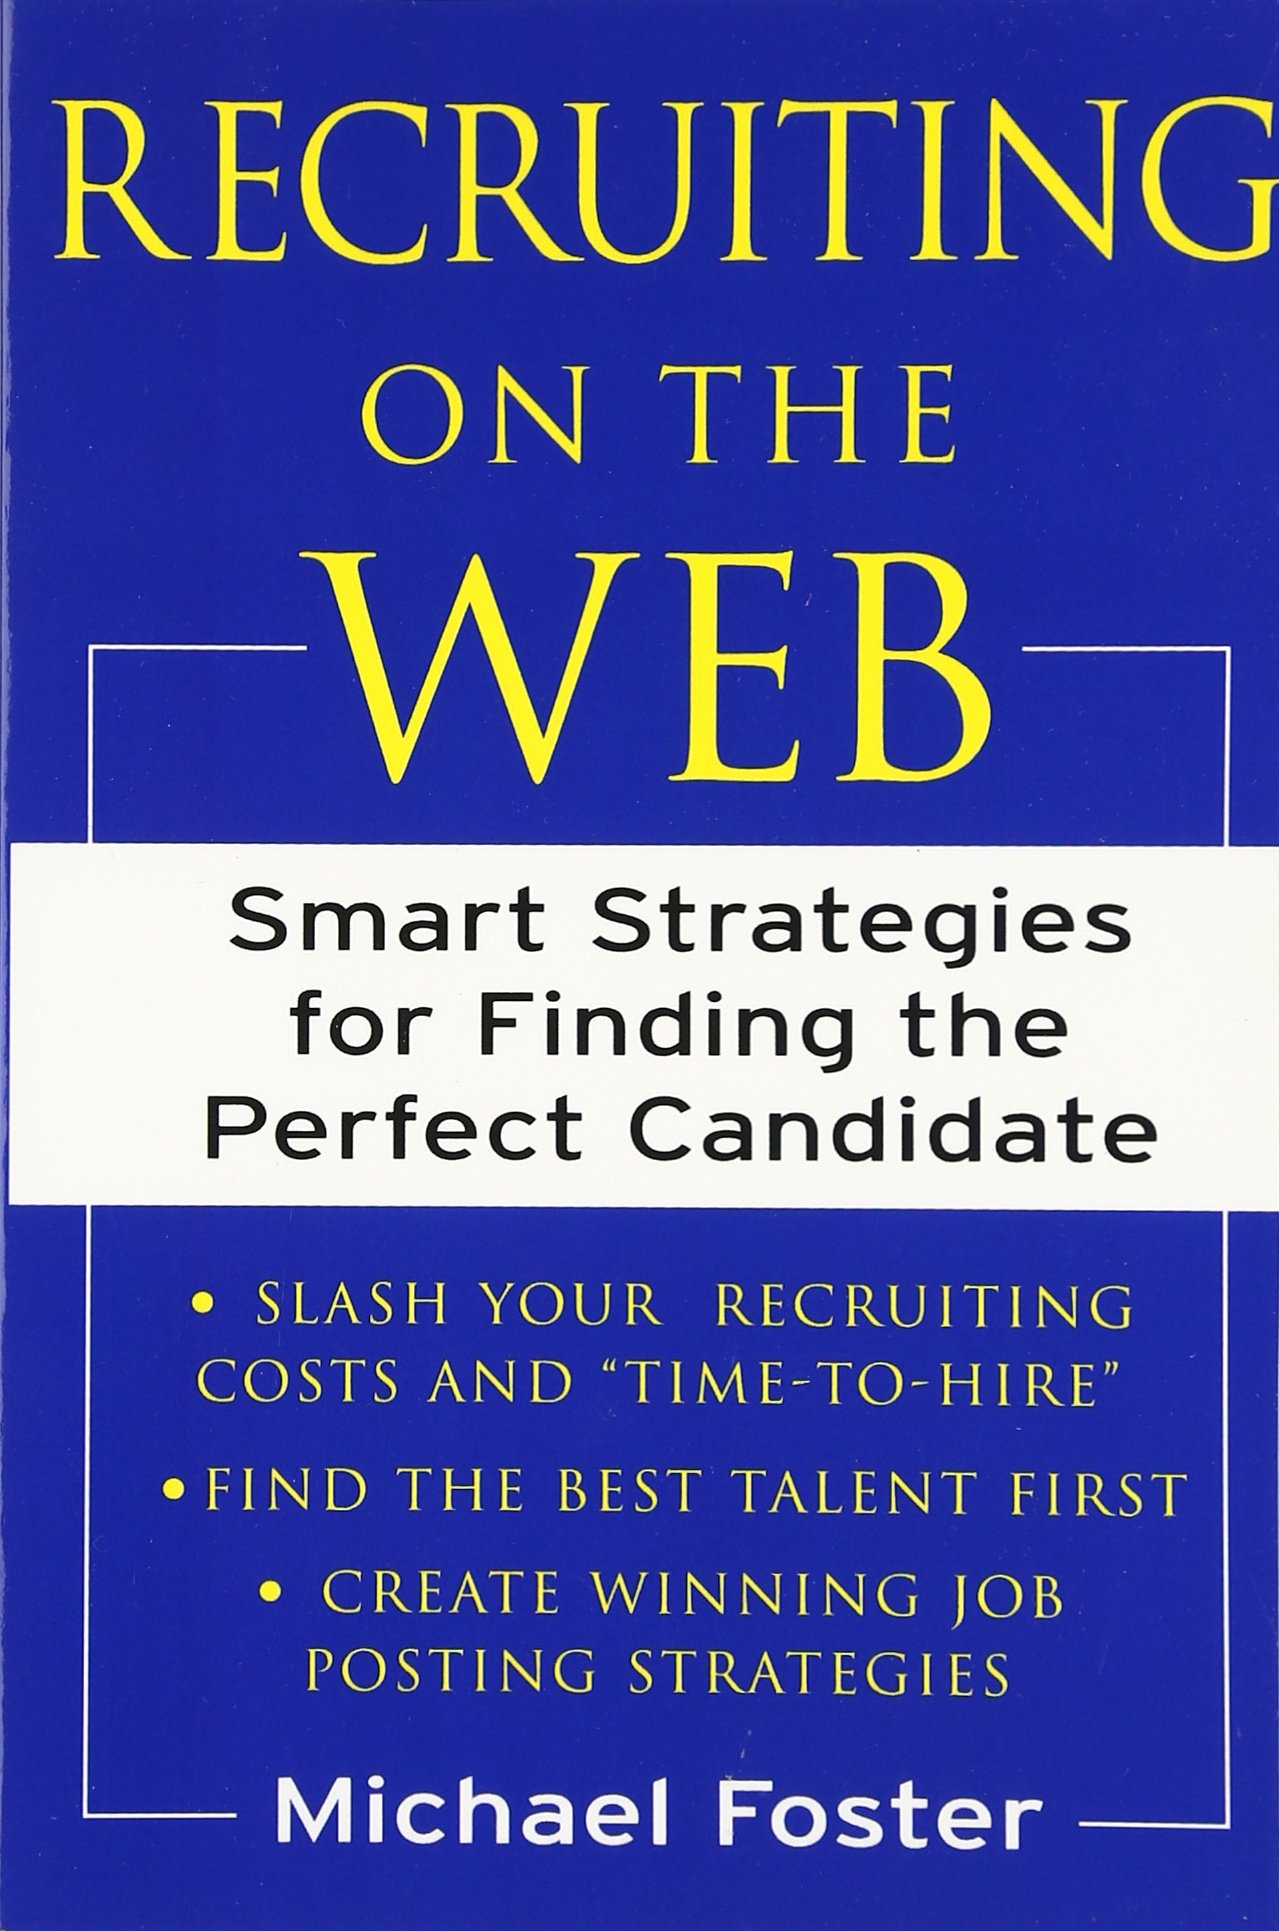 How to organize effective recruitment